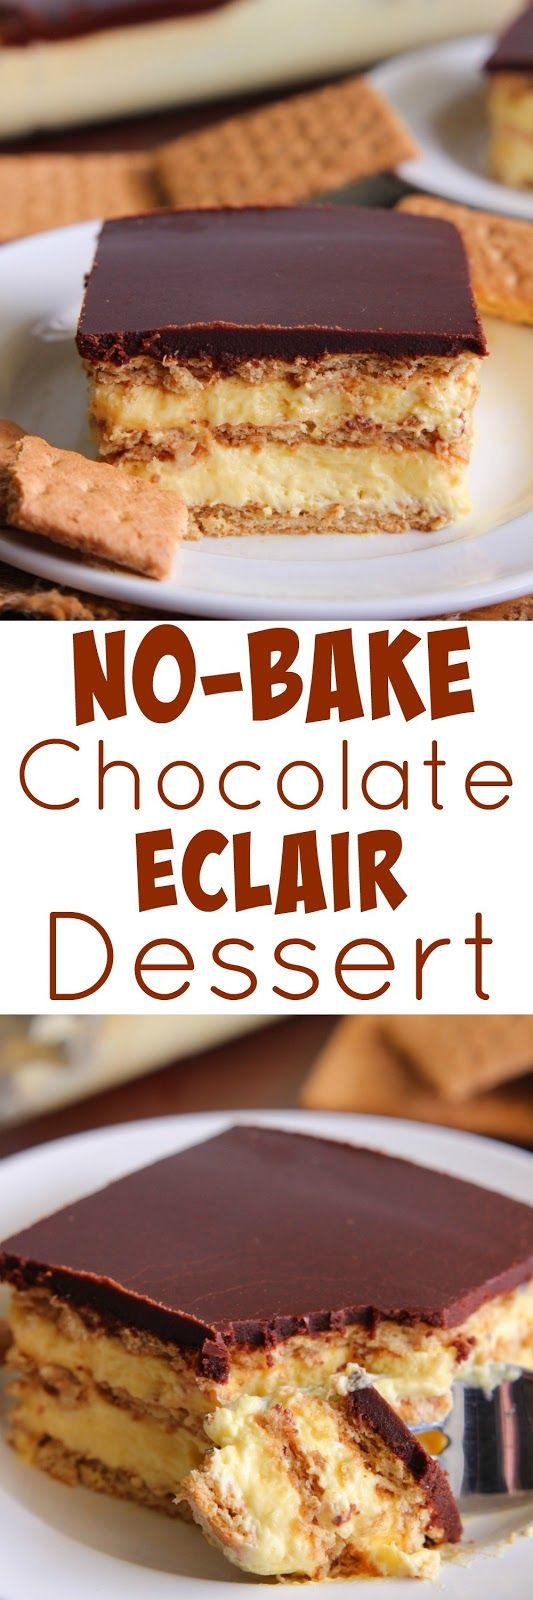 Eat Cake For Dinner: No-Bake Chocolate Eclair Dessert